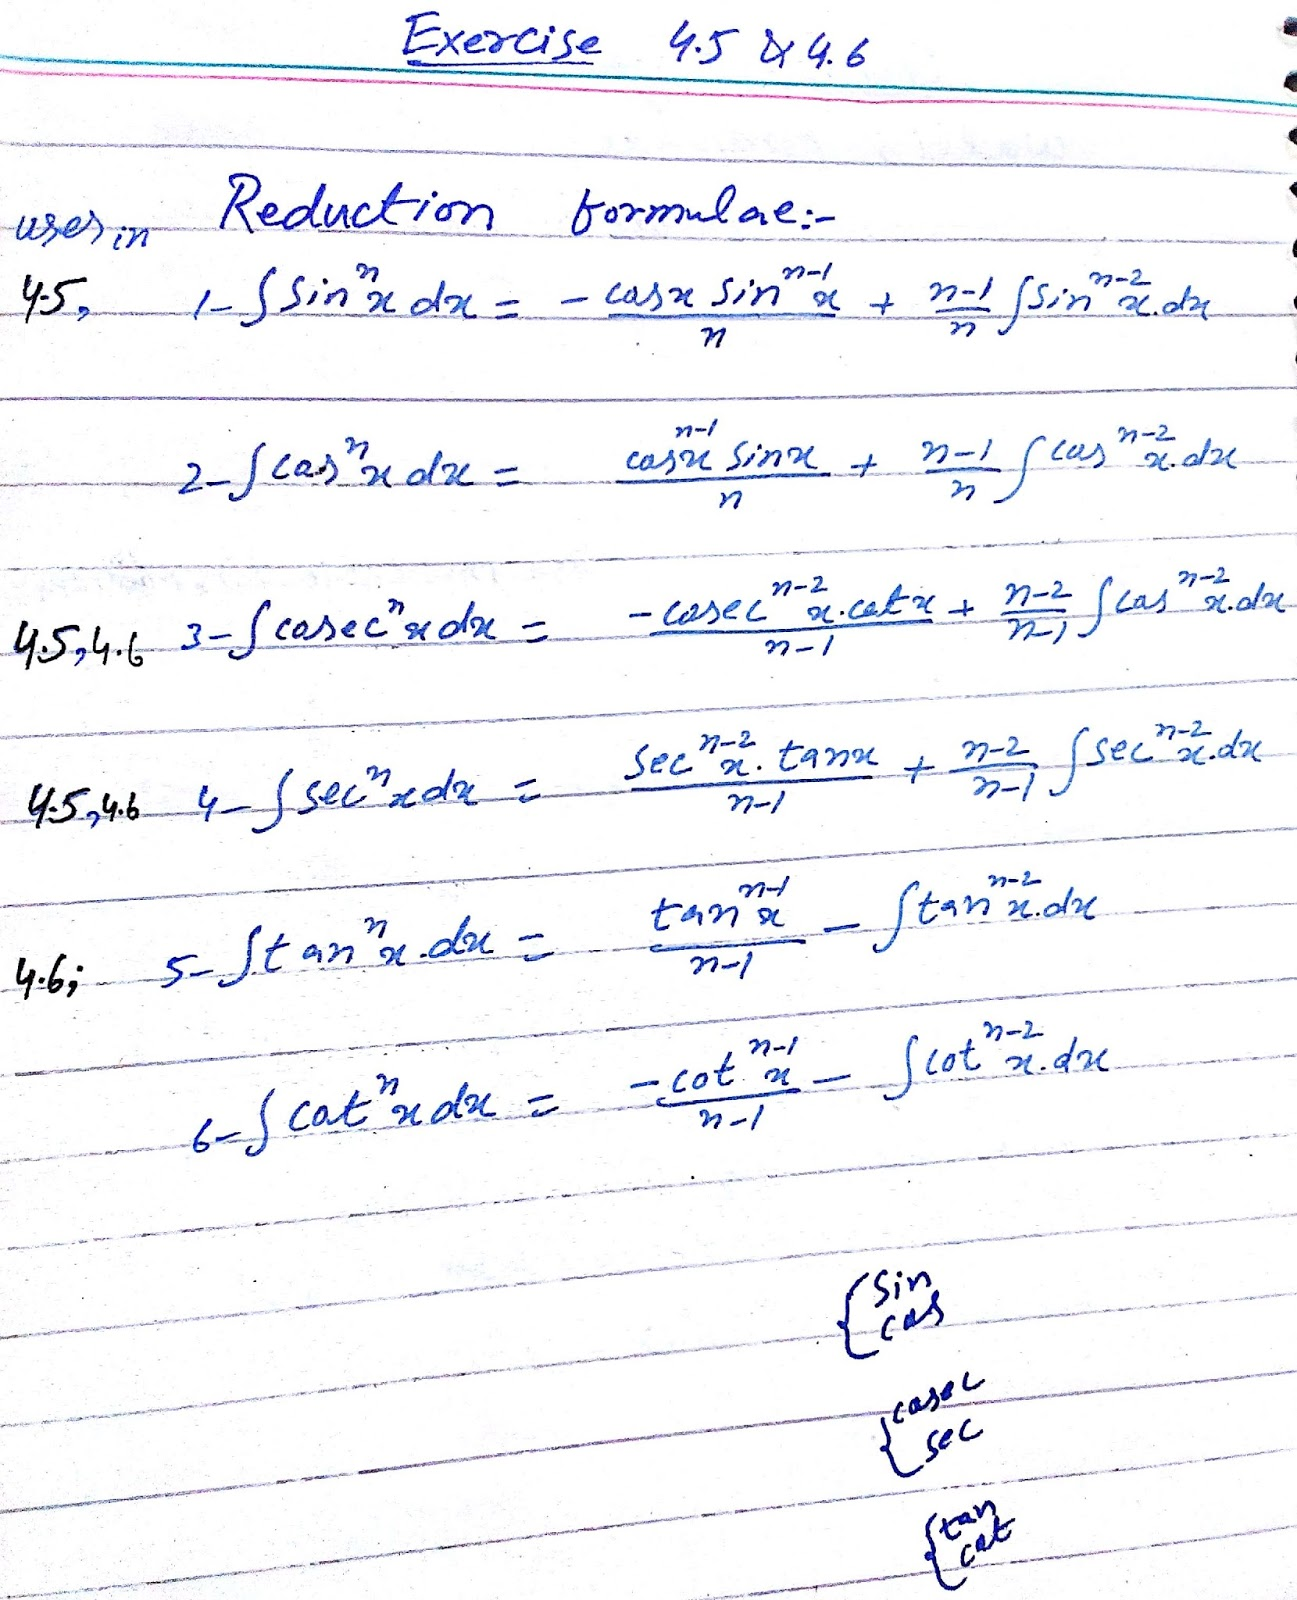 reduction formula for sin,reduction formula pdf,reduction formula integration by parts,reduction formula proof,reduction formula trig,reduction formula for sec,reduction formula calculator,reduction formula trigonometry,reduction formula trigonometry examples,reduction formula examples,reduction formulae pdf,reduction formula trigonometry pdf,trigonometric reduction formulas proof,grade 11 trigonometric identities,grade 11 trigonometry questions and answers